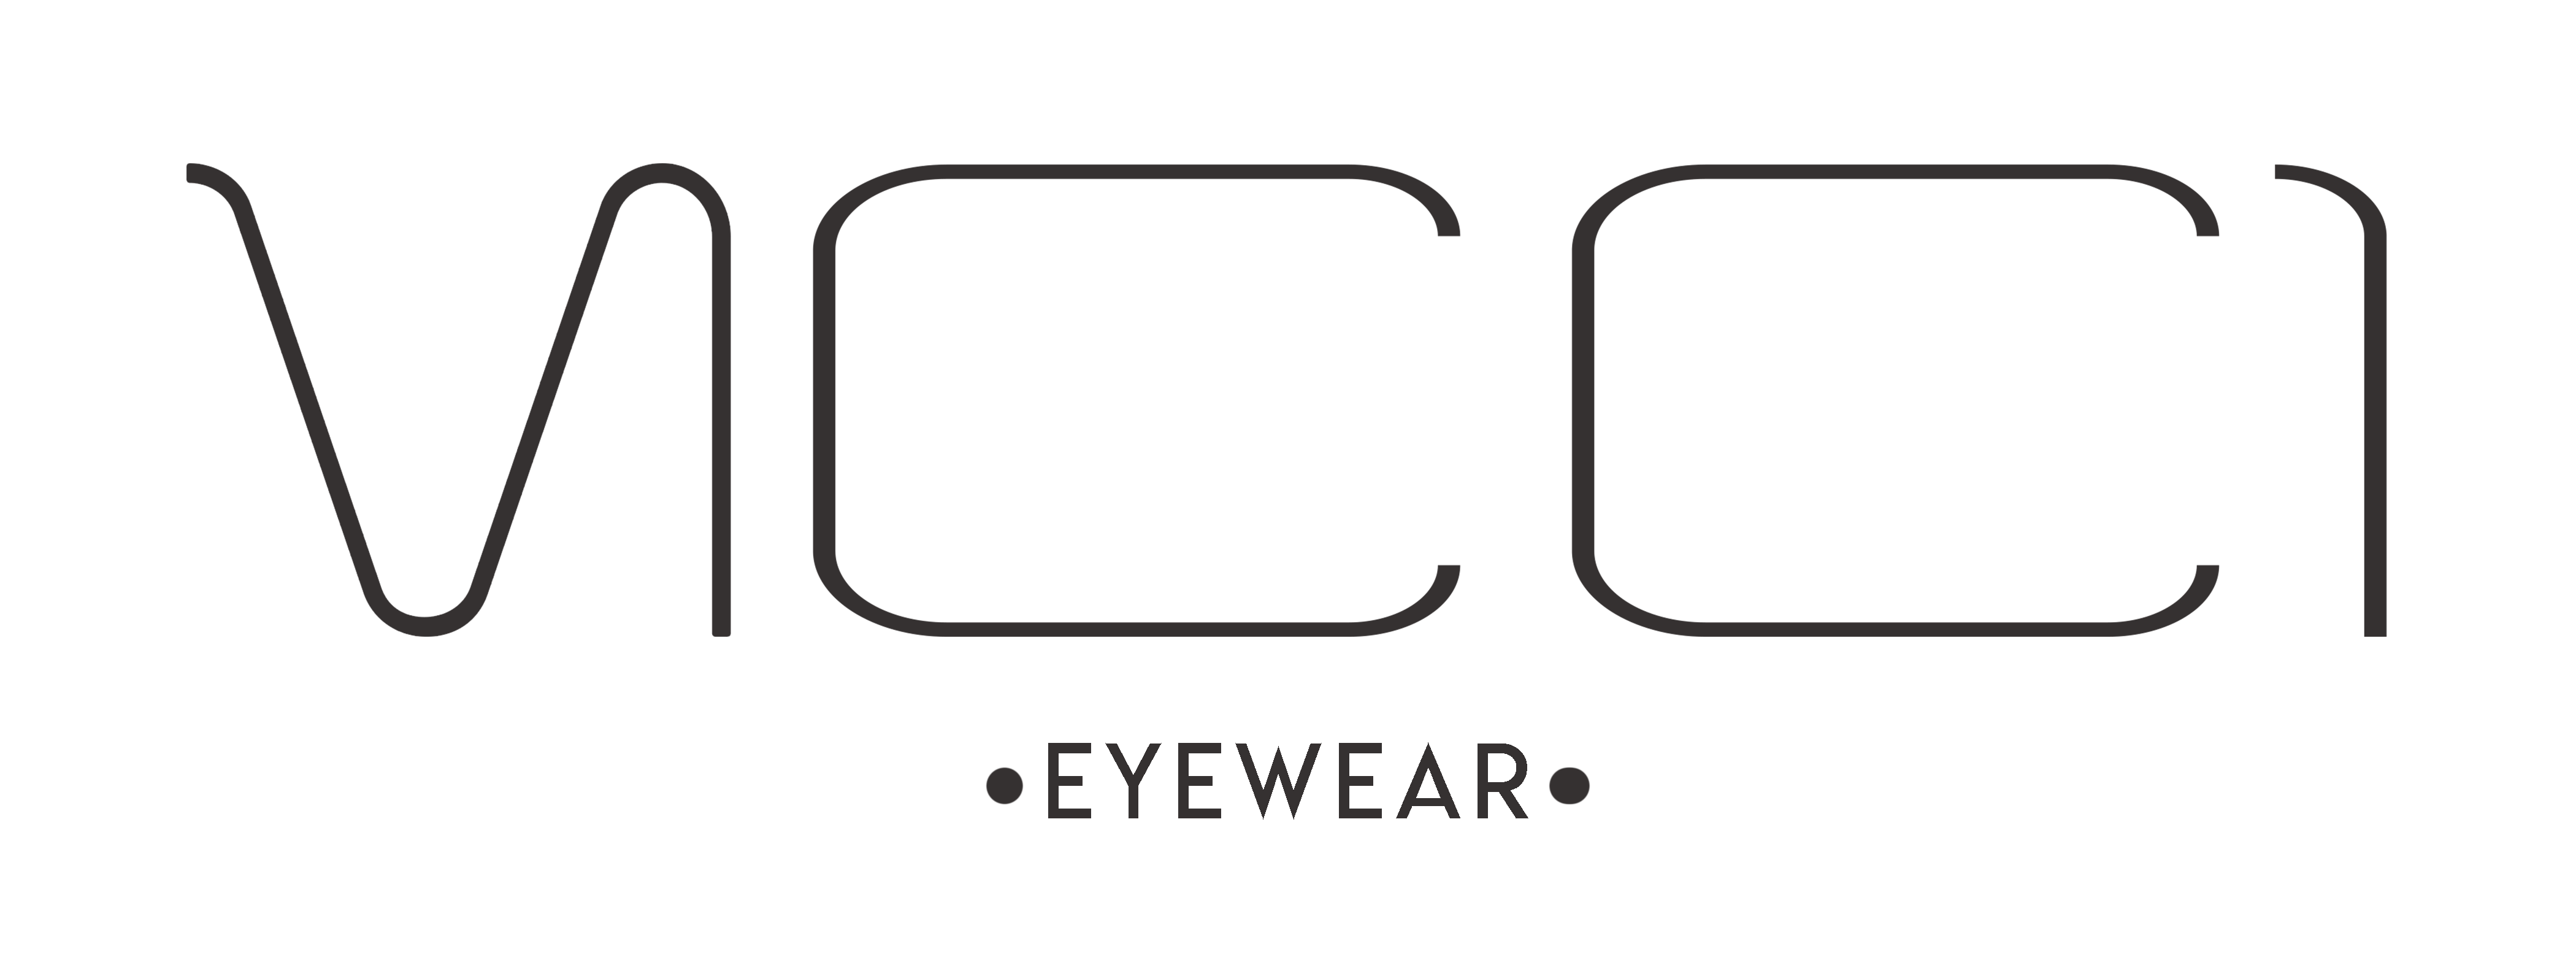 VICCI Eyewear Supports and Protects Eyes from Blue Light